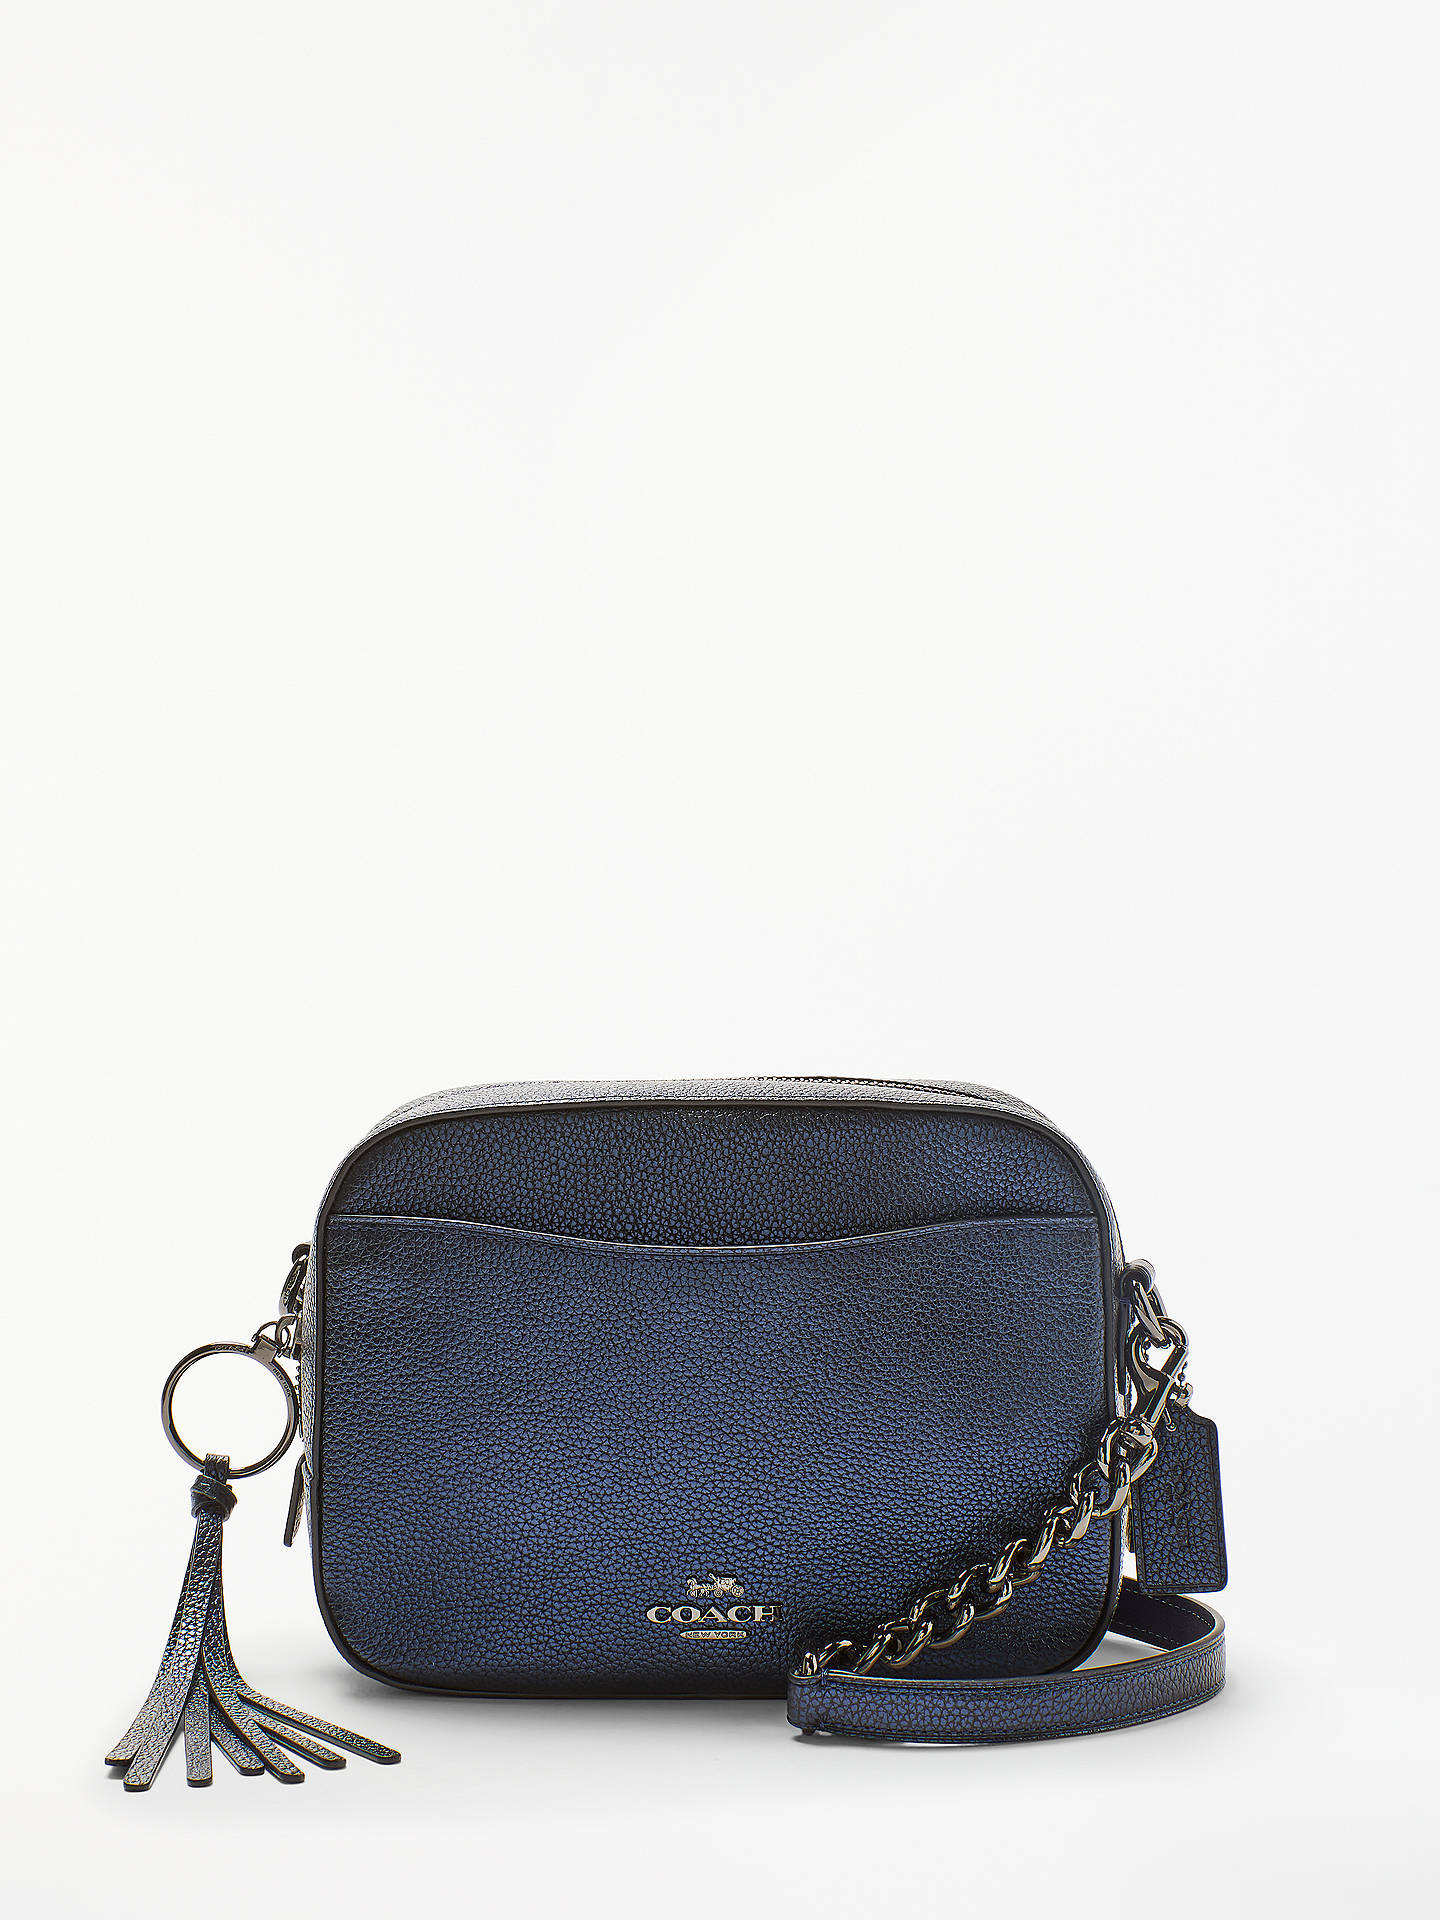 3c75b8c09638a Buy Coach Leather Cross Body Camera Bag, Metallic Blue Online at  johnlewis.com ...